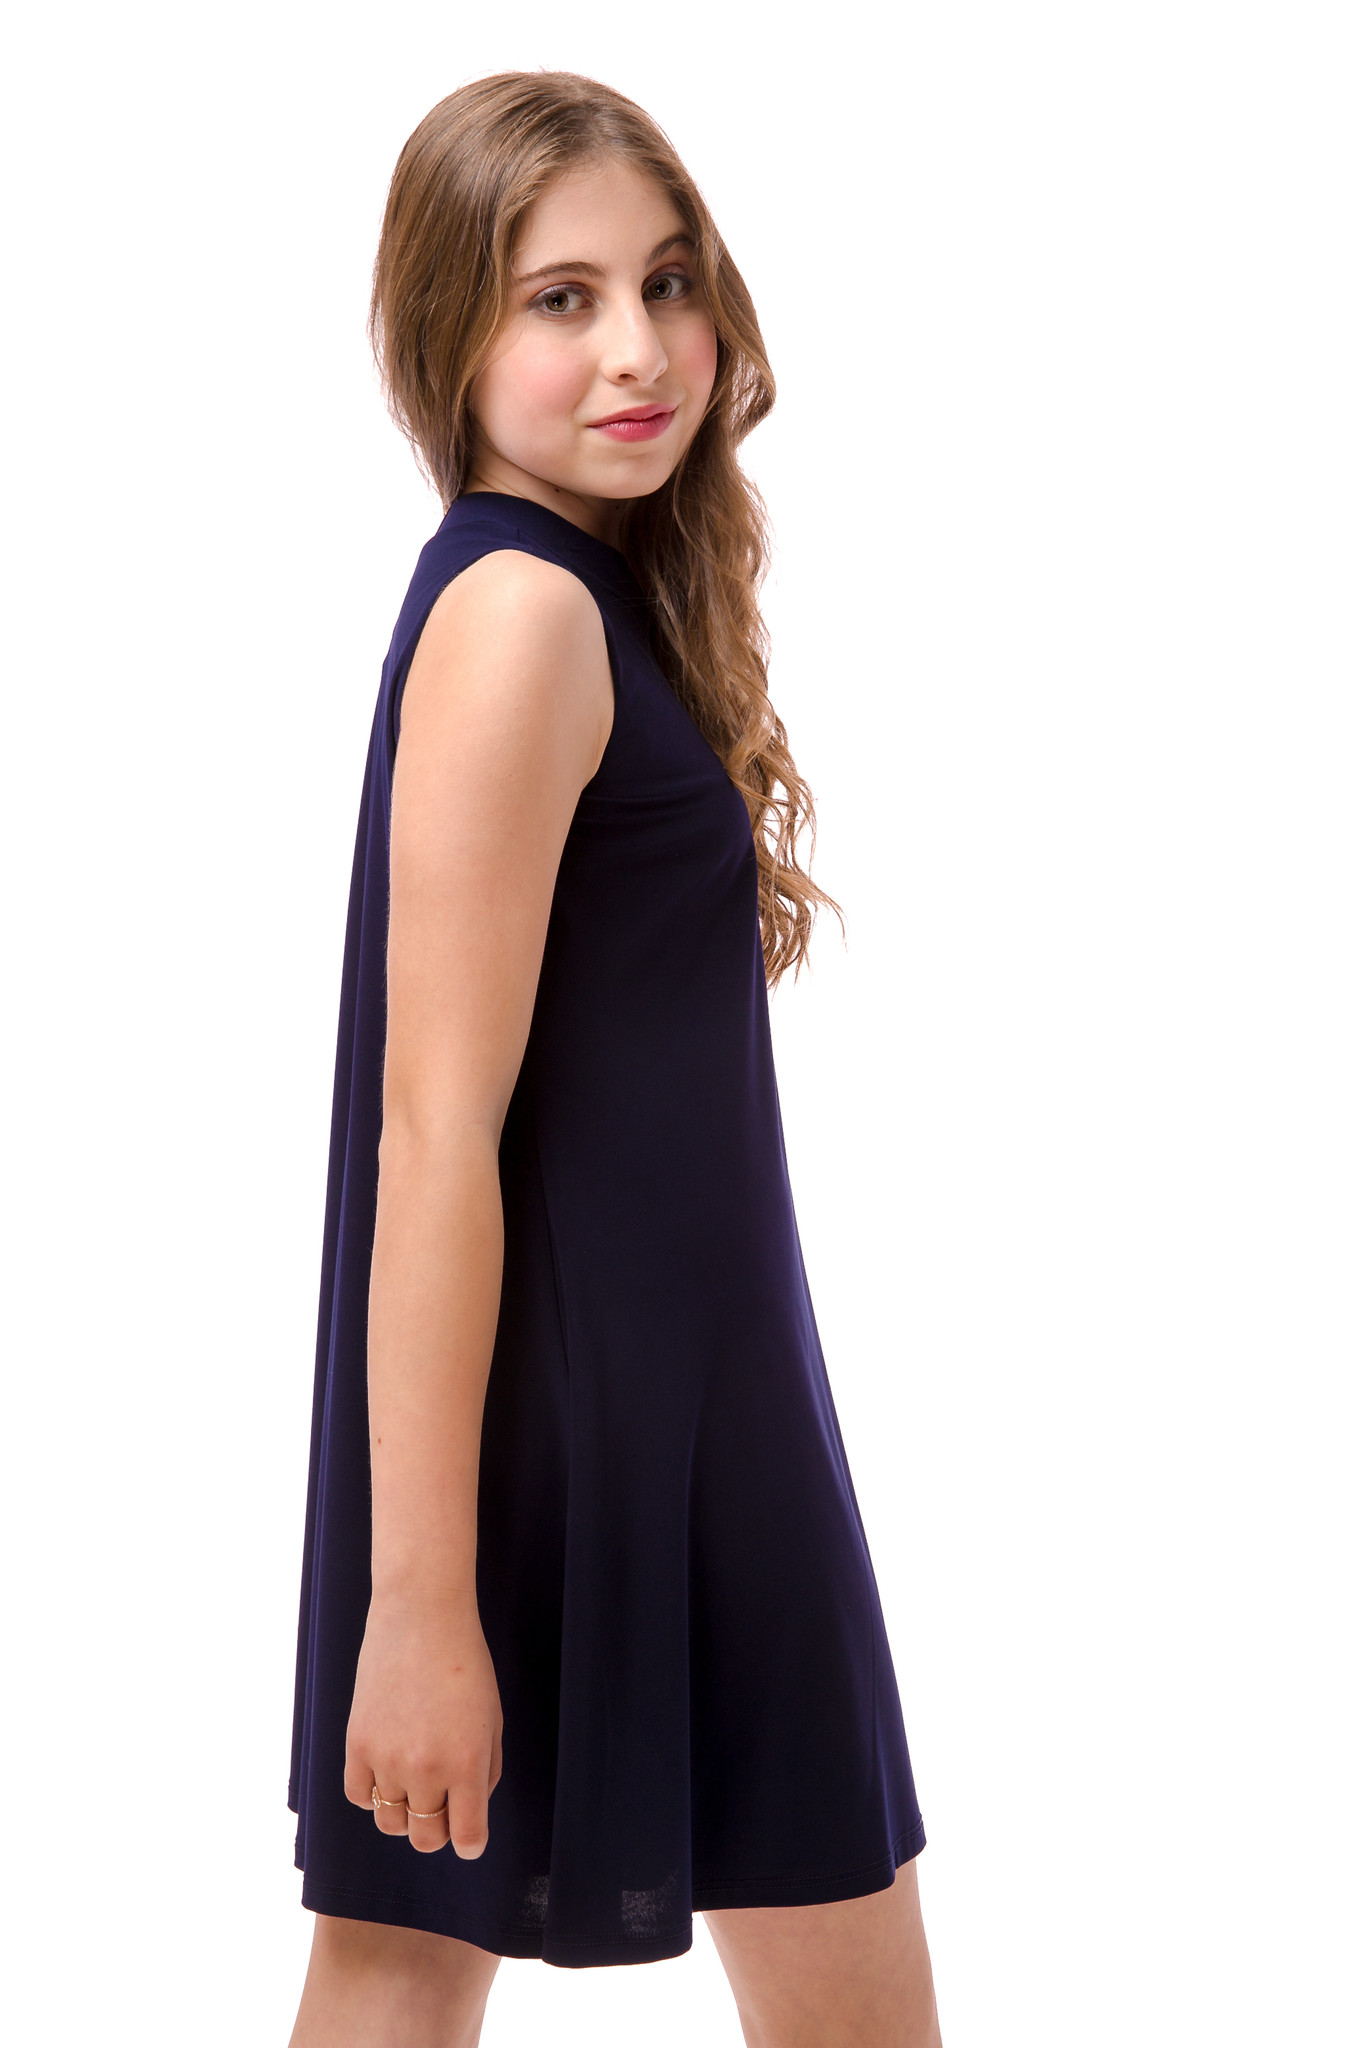 Side view of the Tween Girls High Neck Navy A Line Dress.